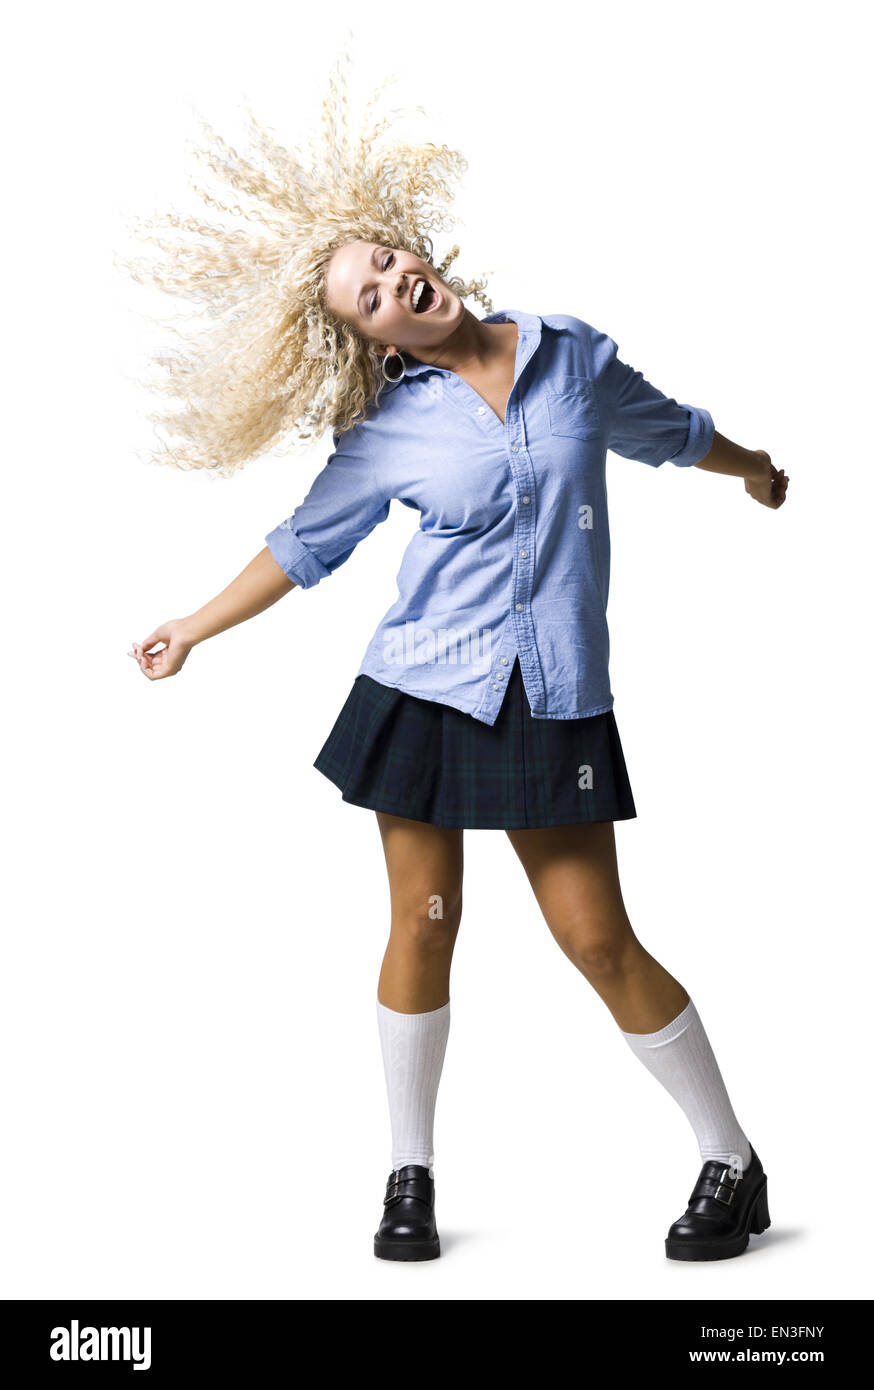 woman in a school girl outfit - Stock Image